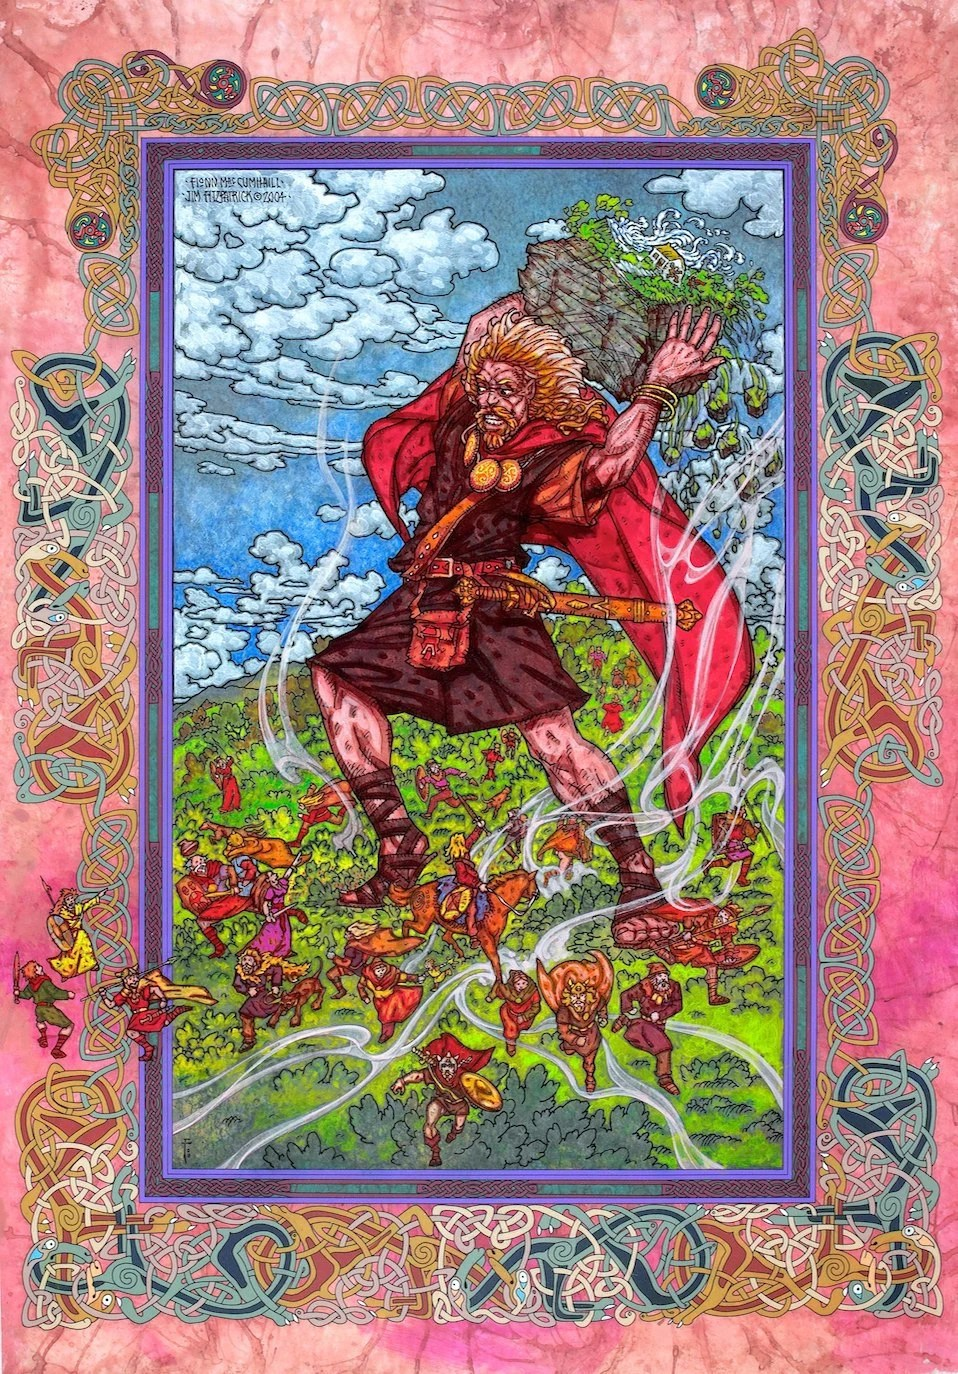 Celtic Art Print Fionn Mac Cumhaill (Finn MacCool) Signed and numbered Limited Edition Print 33x23. Irish Art, Celtic, Legend, Mythology.